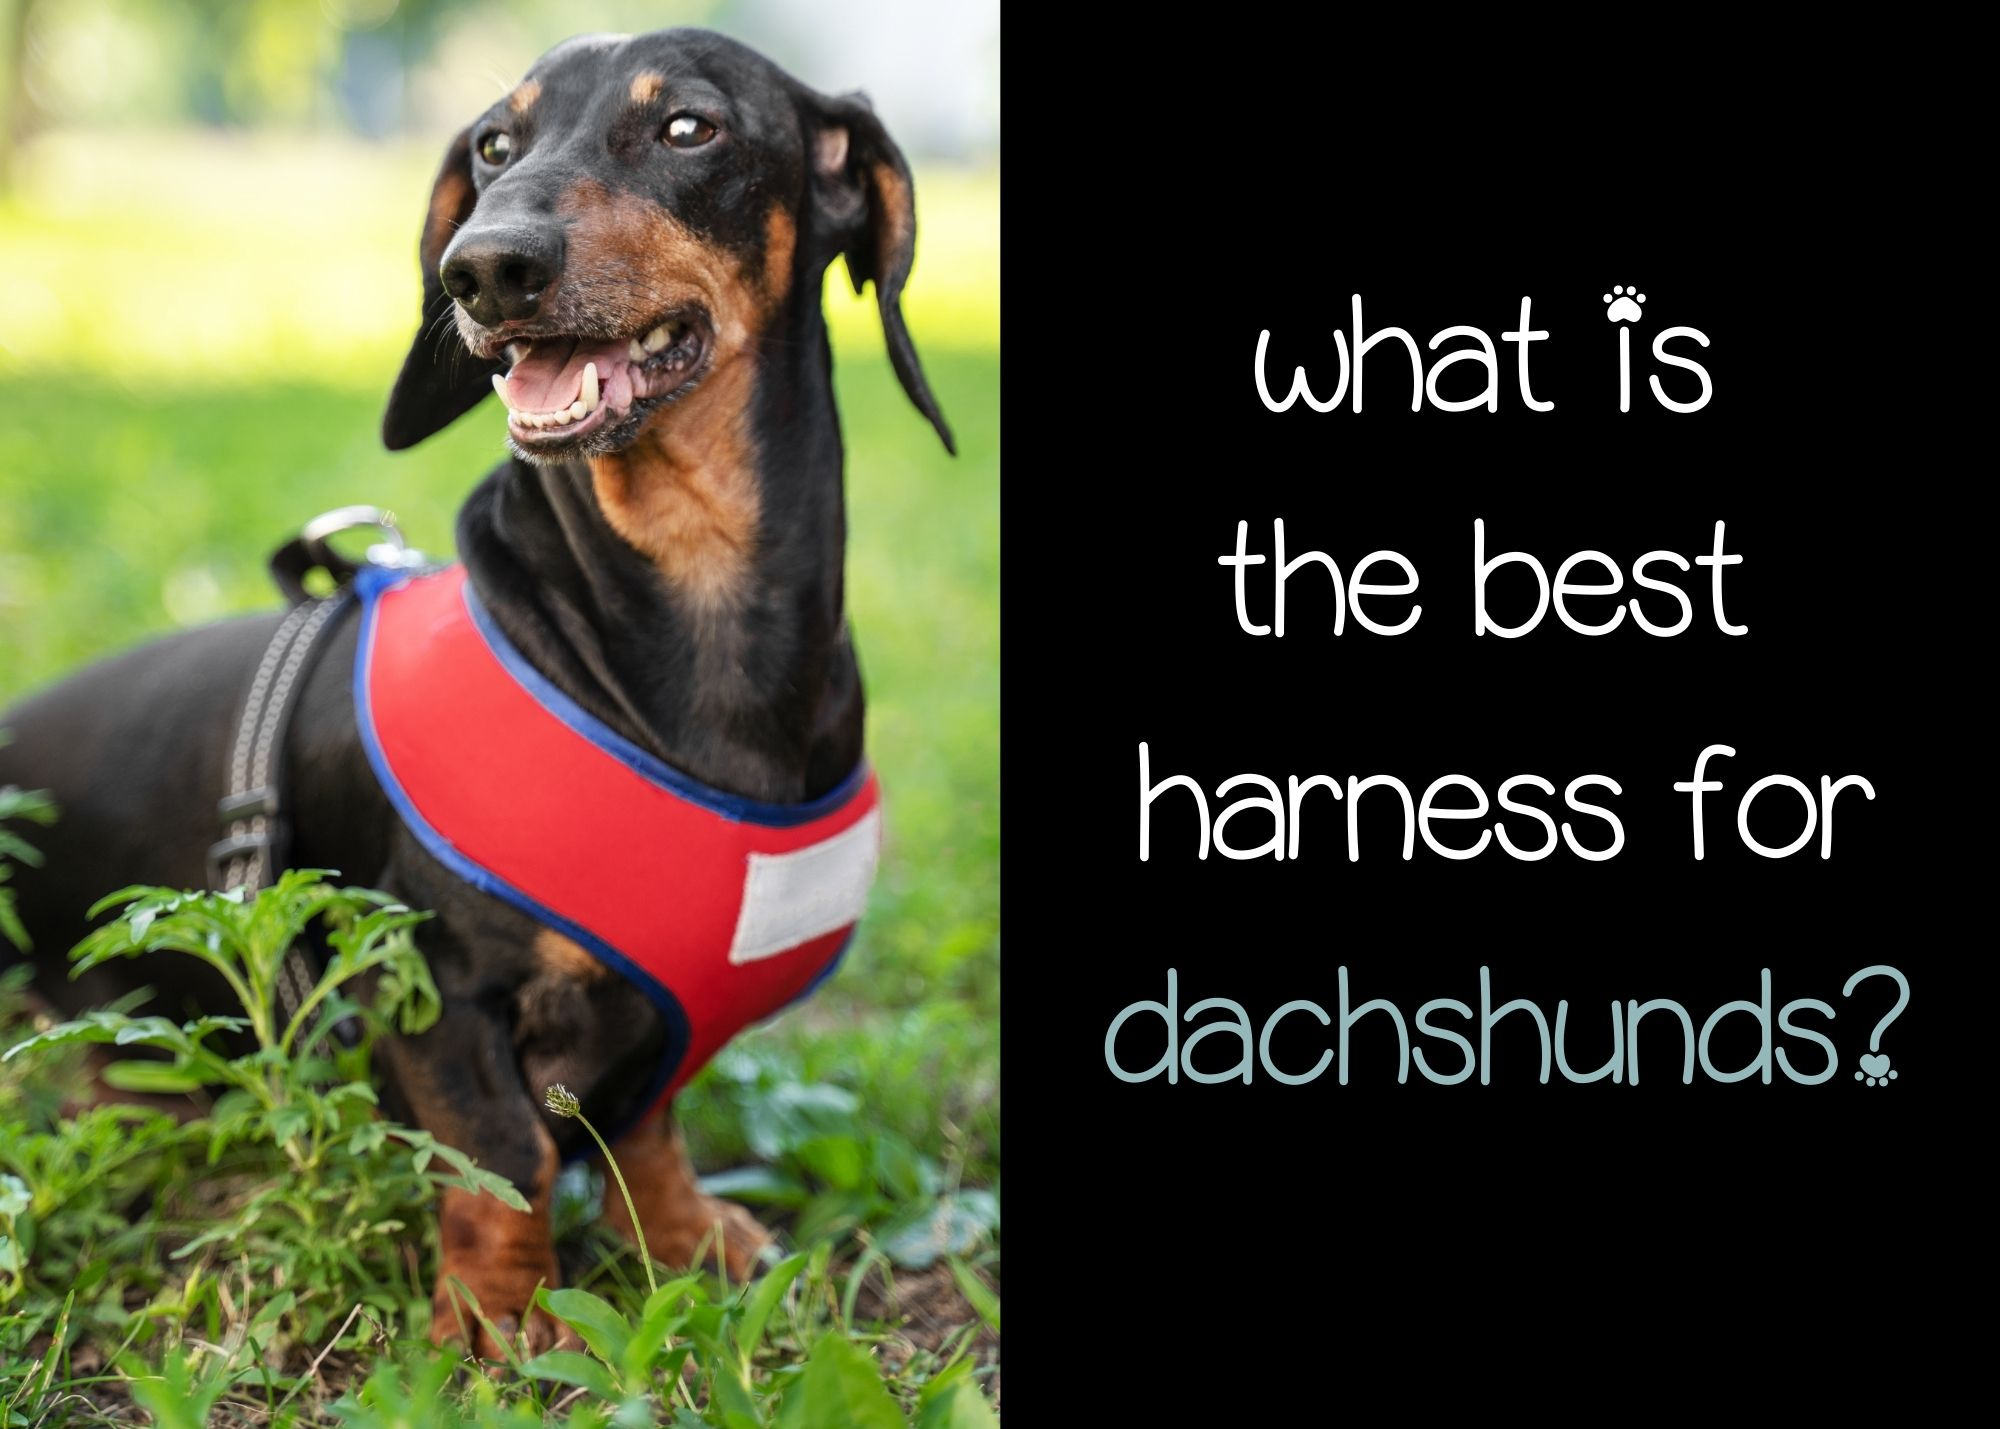 what is the best harness for dachshunds